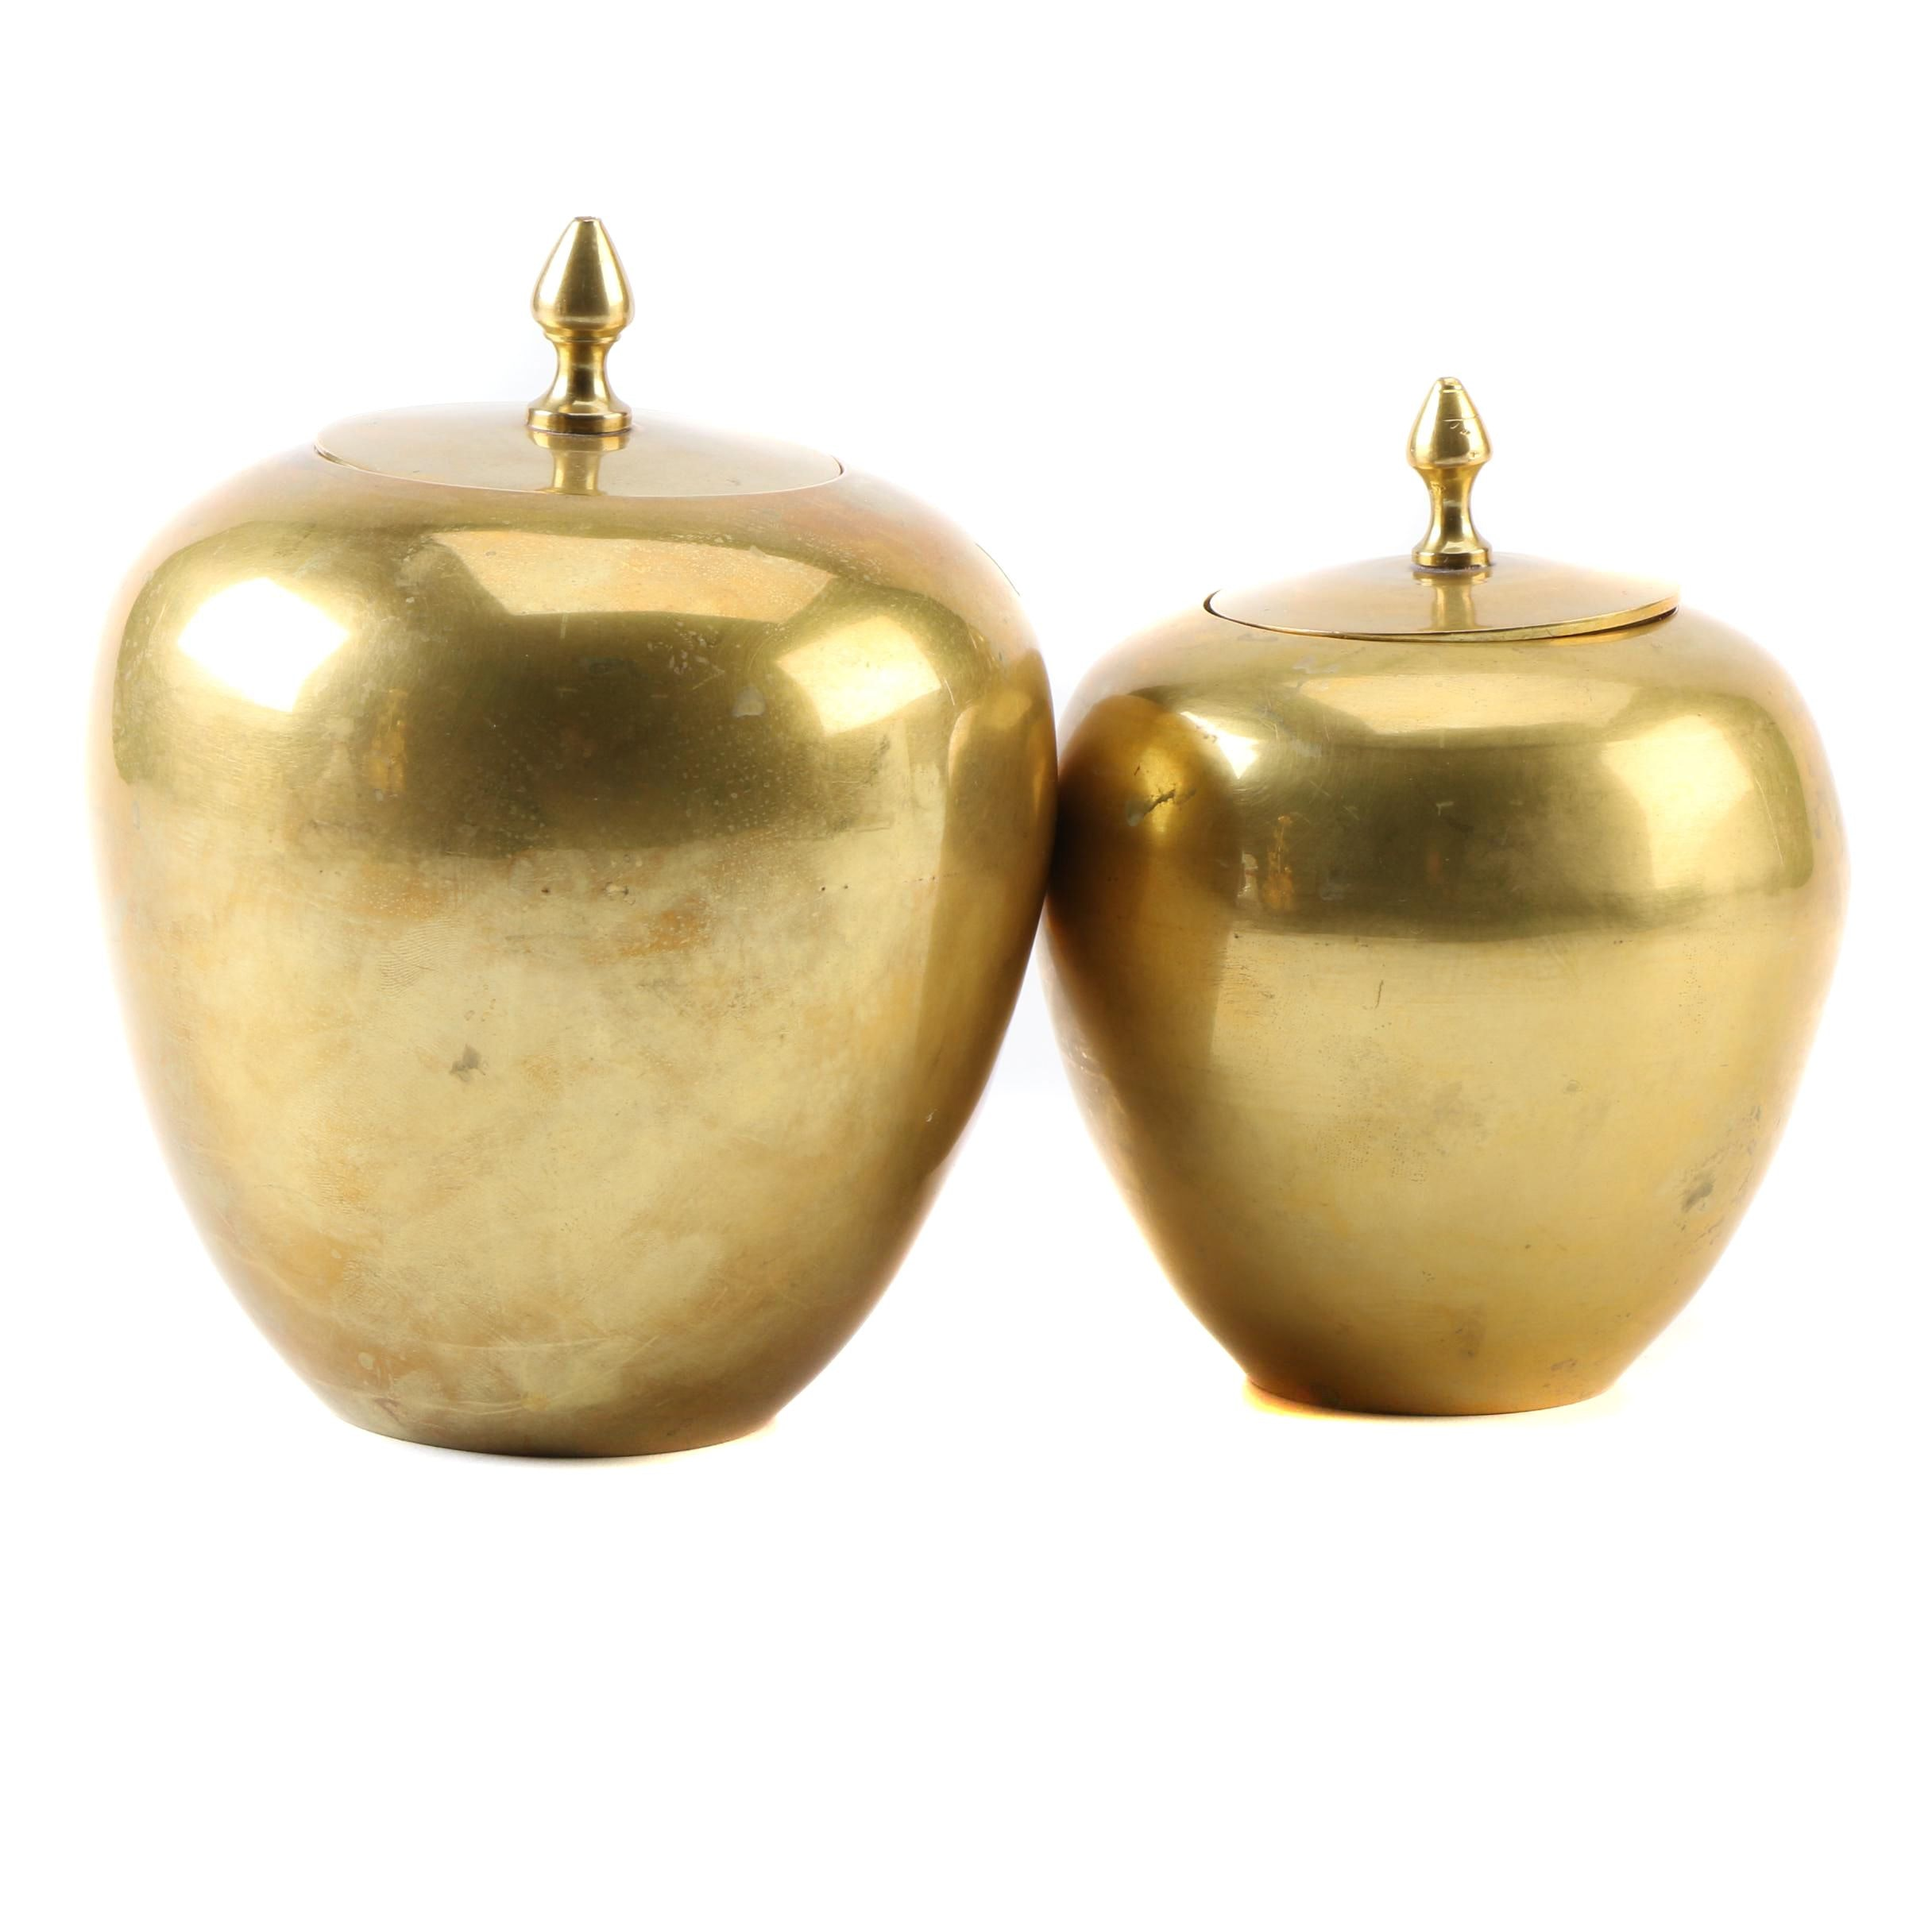 Solid Brass Canisters